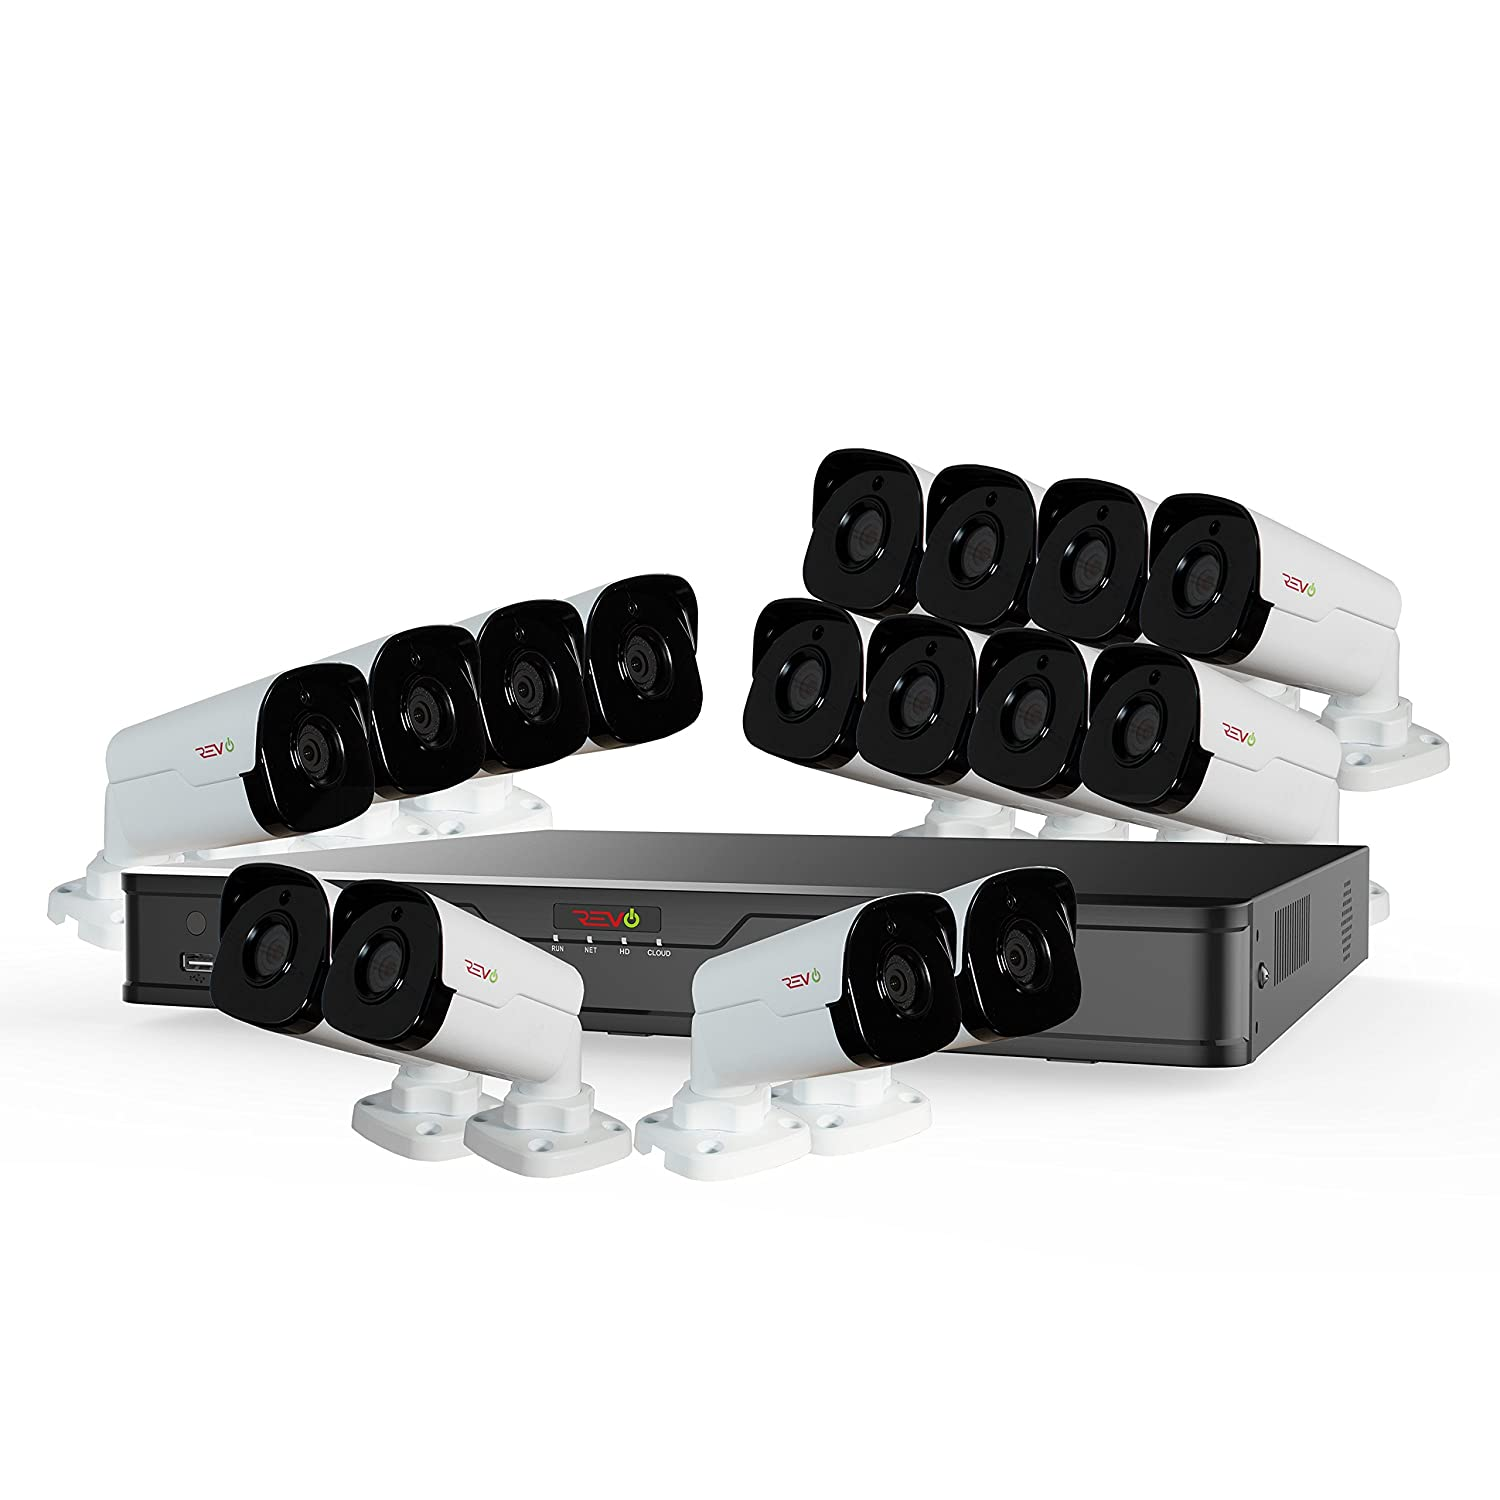 Revo America Ultra 16Ch. 4TB HDD 4K IP NVR Surveillance System – Fixed Lens 16 x 4MP Audio IP Bullet Cameras Built-in-MIC – Remote Access via Smart Phone, Tablet, PC MAC